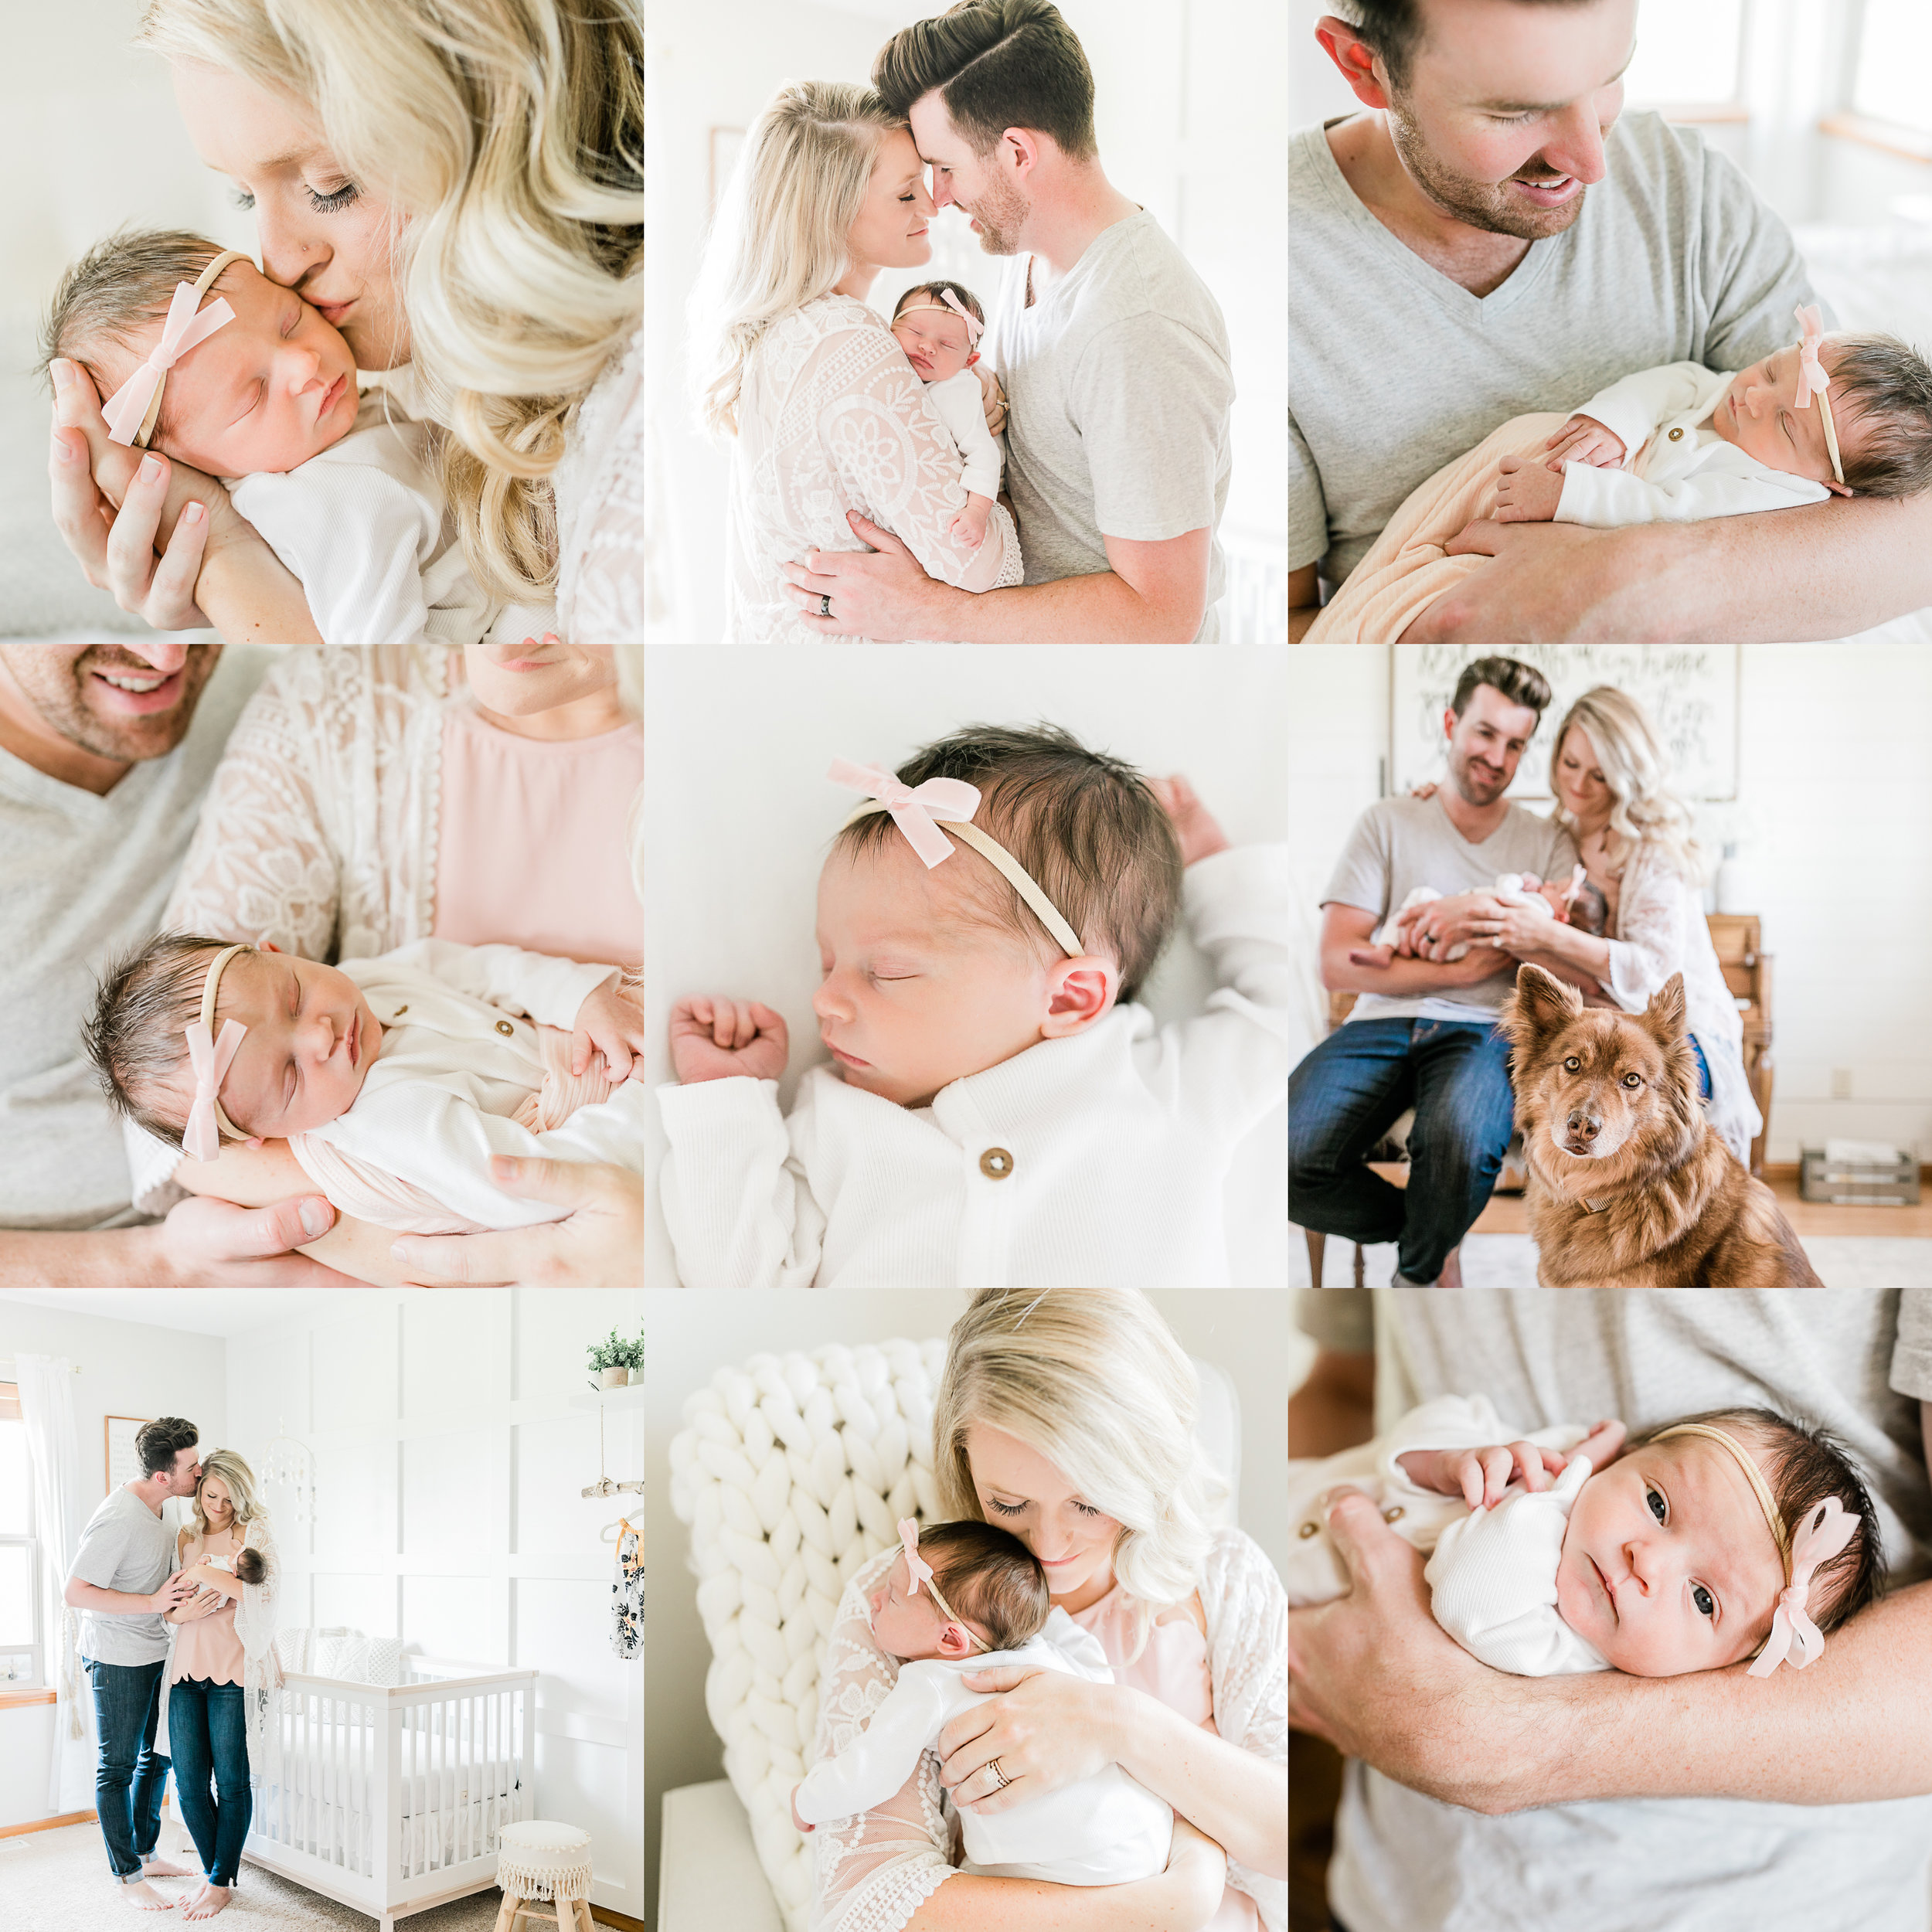 kaisley-collage-newborn-photography-waukesha.jpg